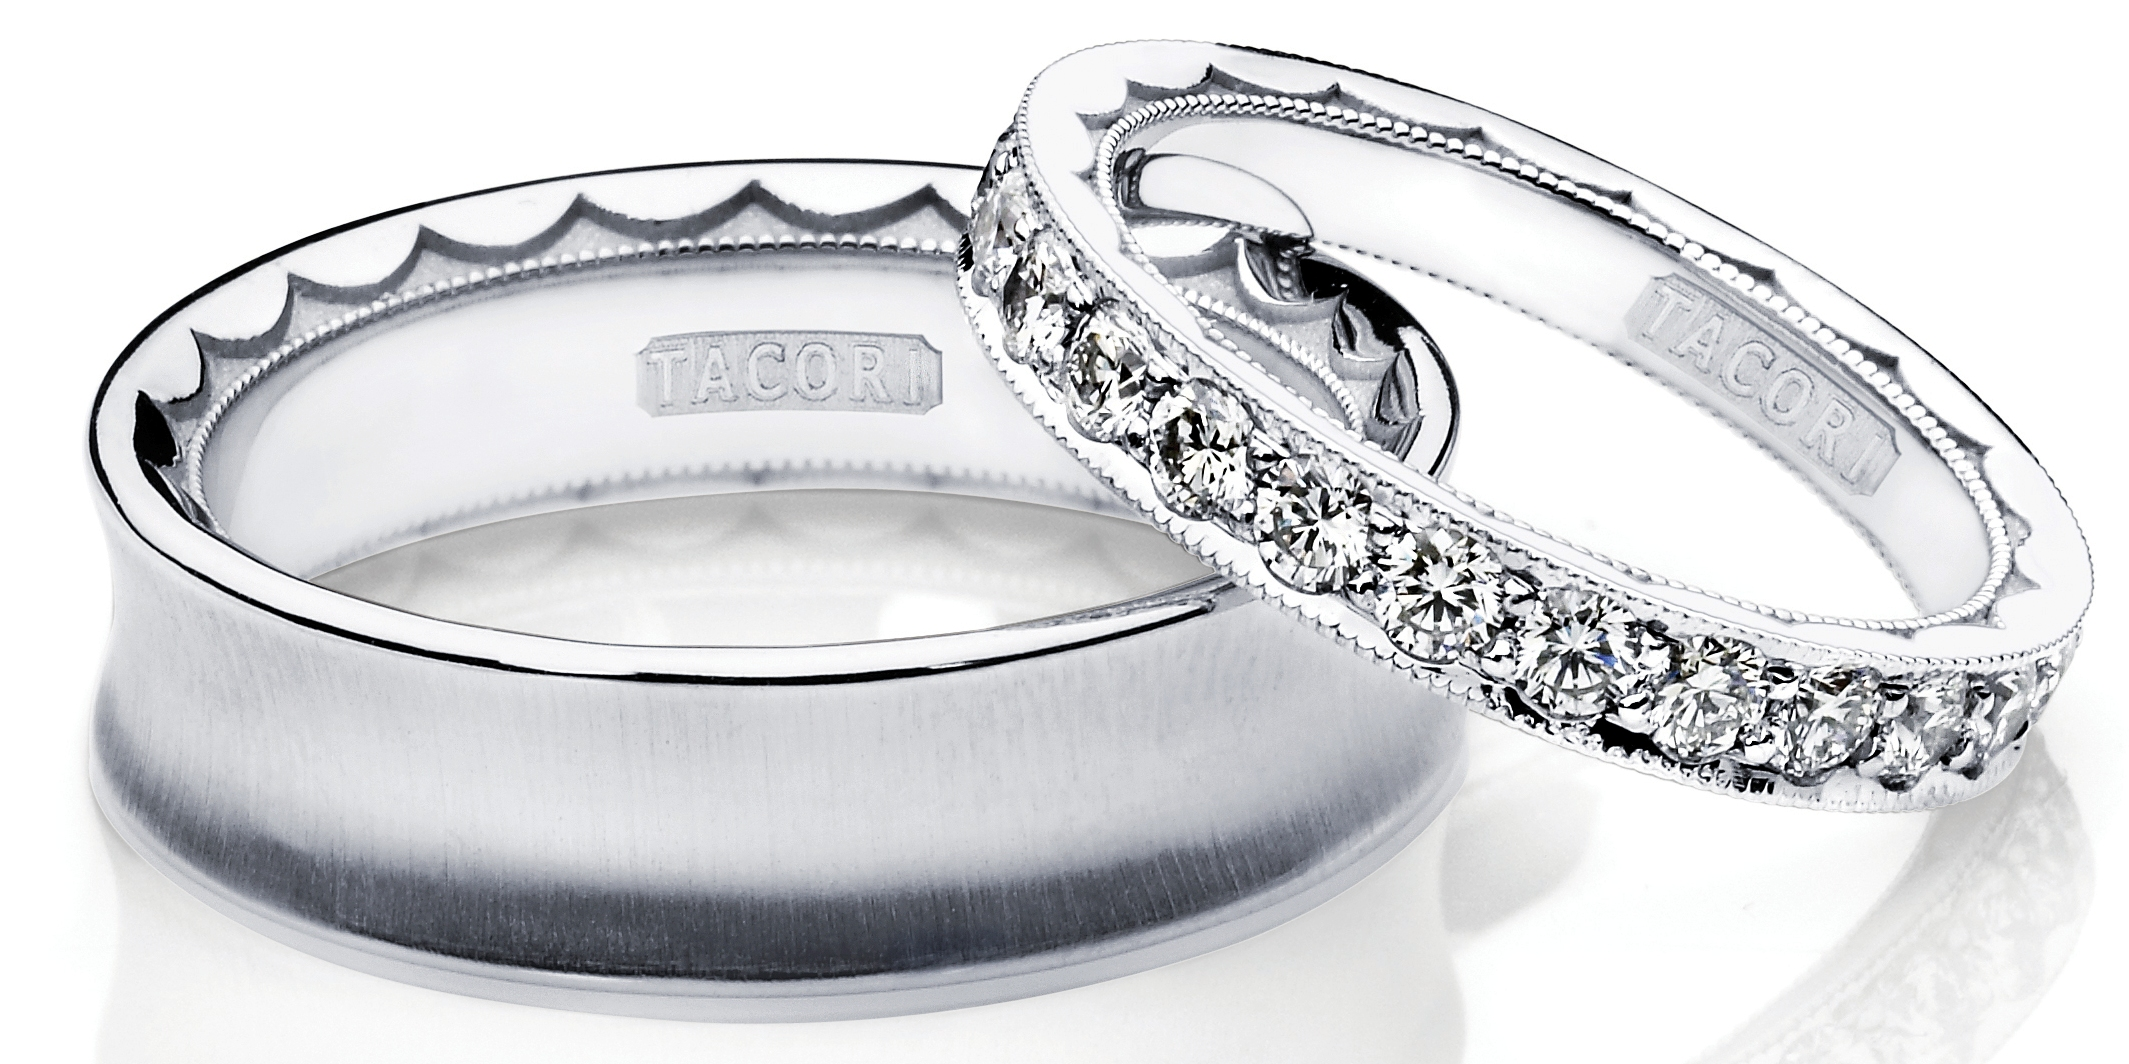 2 platinum wedding bands Tacori His and Hers Bands TACORI designers create platinum and diamond wedding